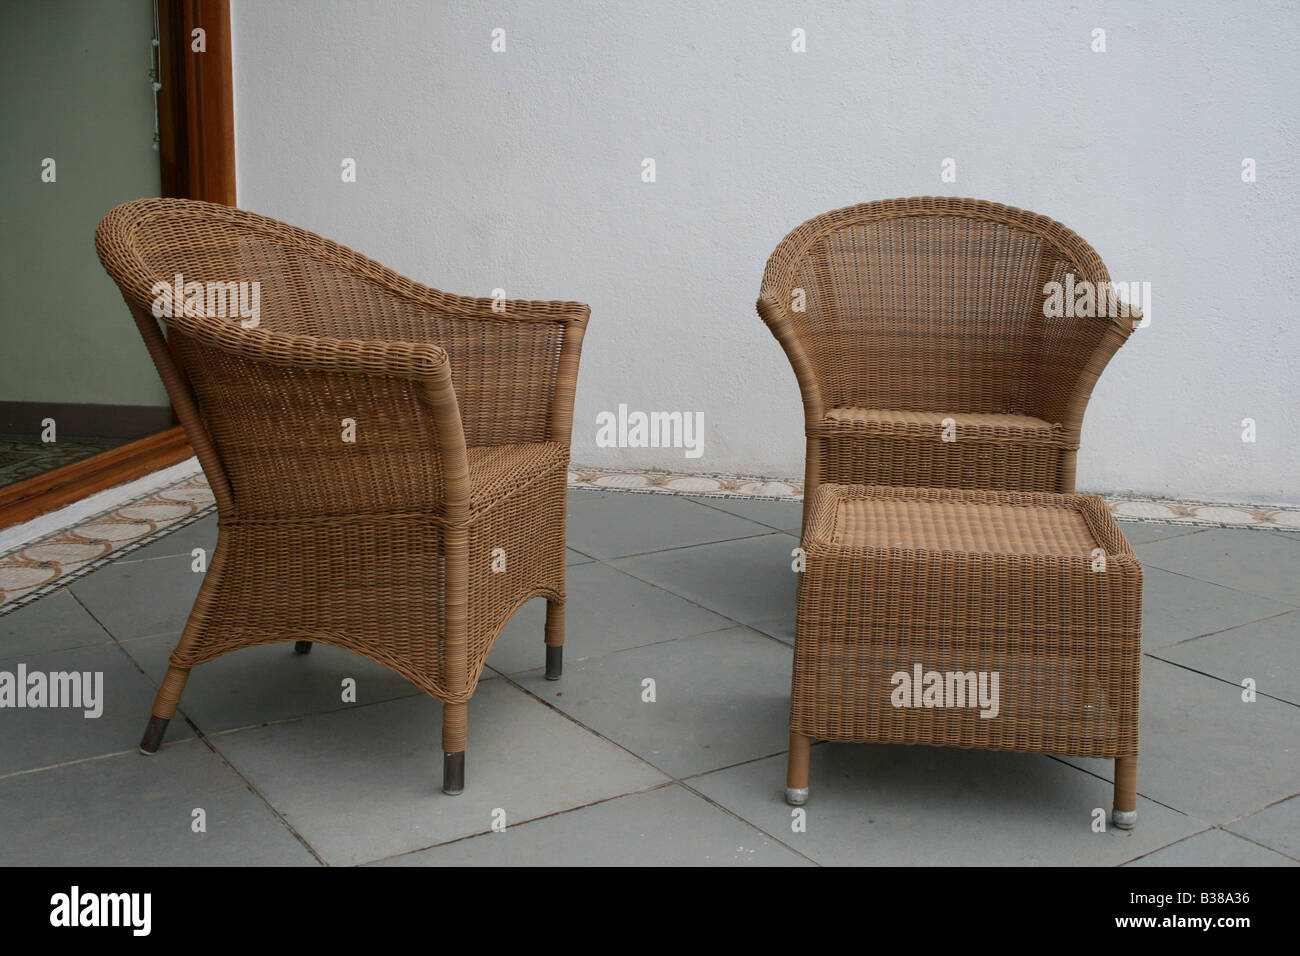 Hand Made Traditional Indian Keralite Chair And Table Furniture Made Of  Bamboo And Straw Designed By Craftsmen